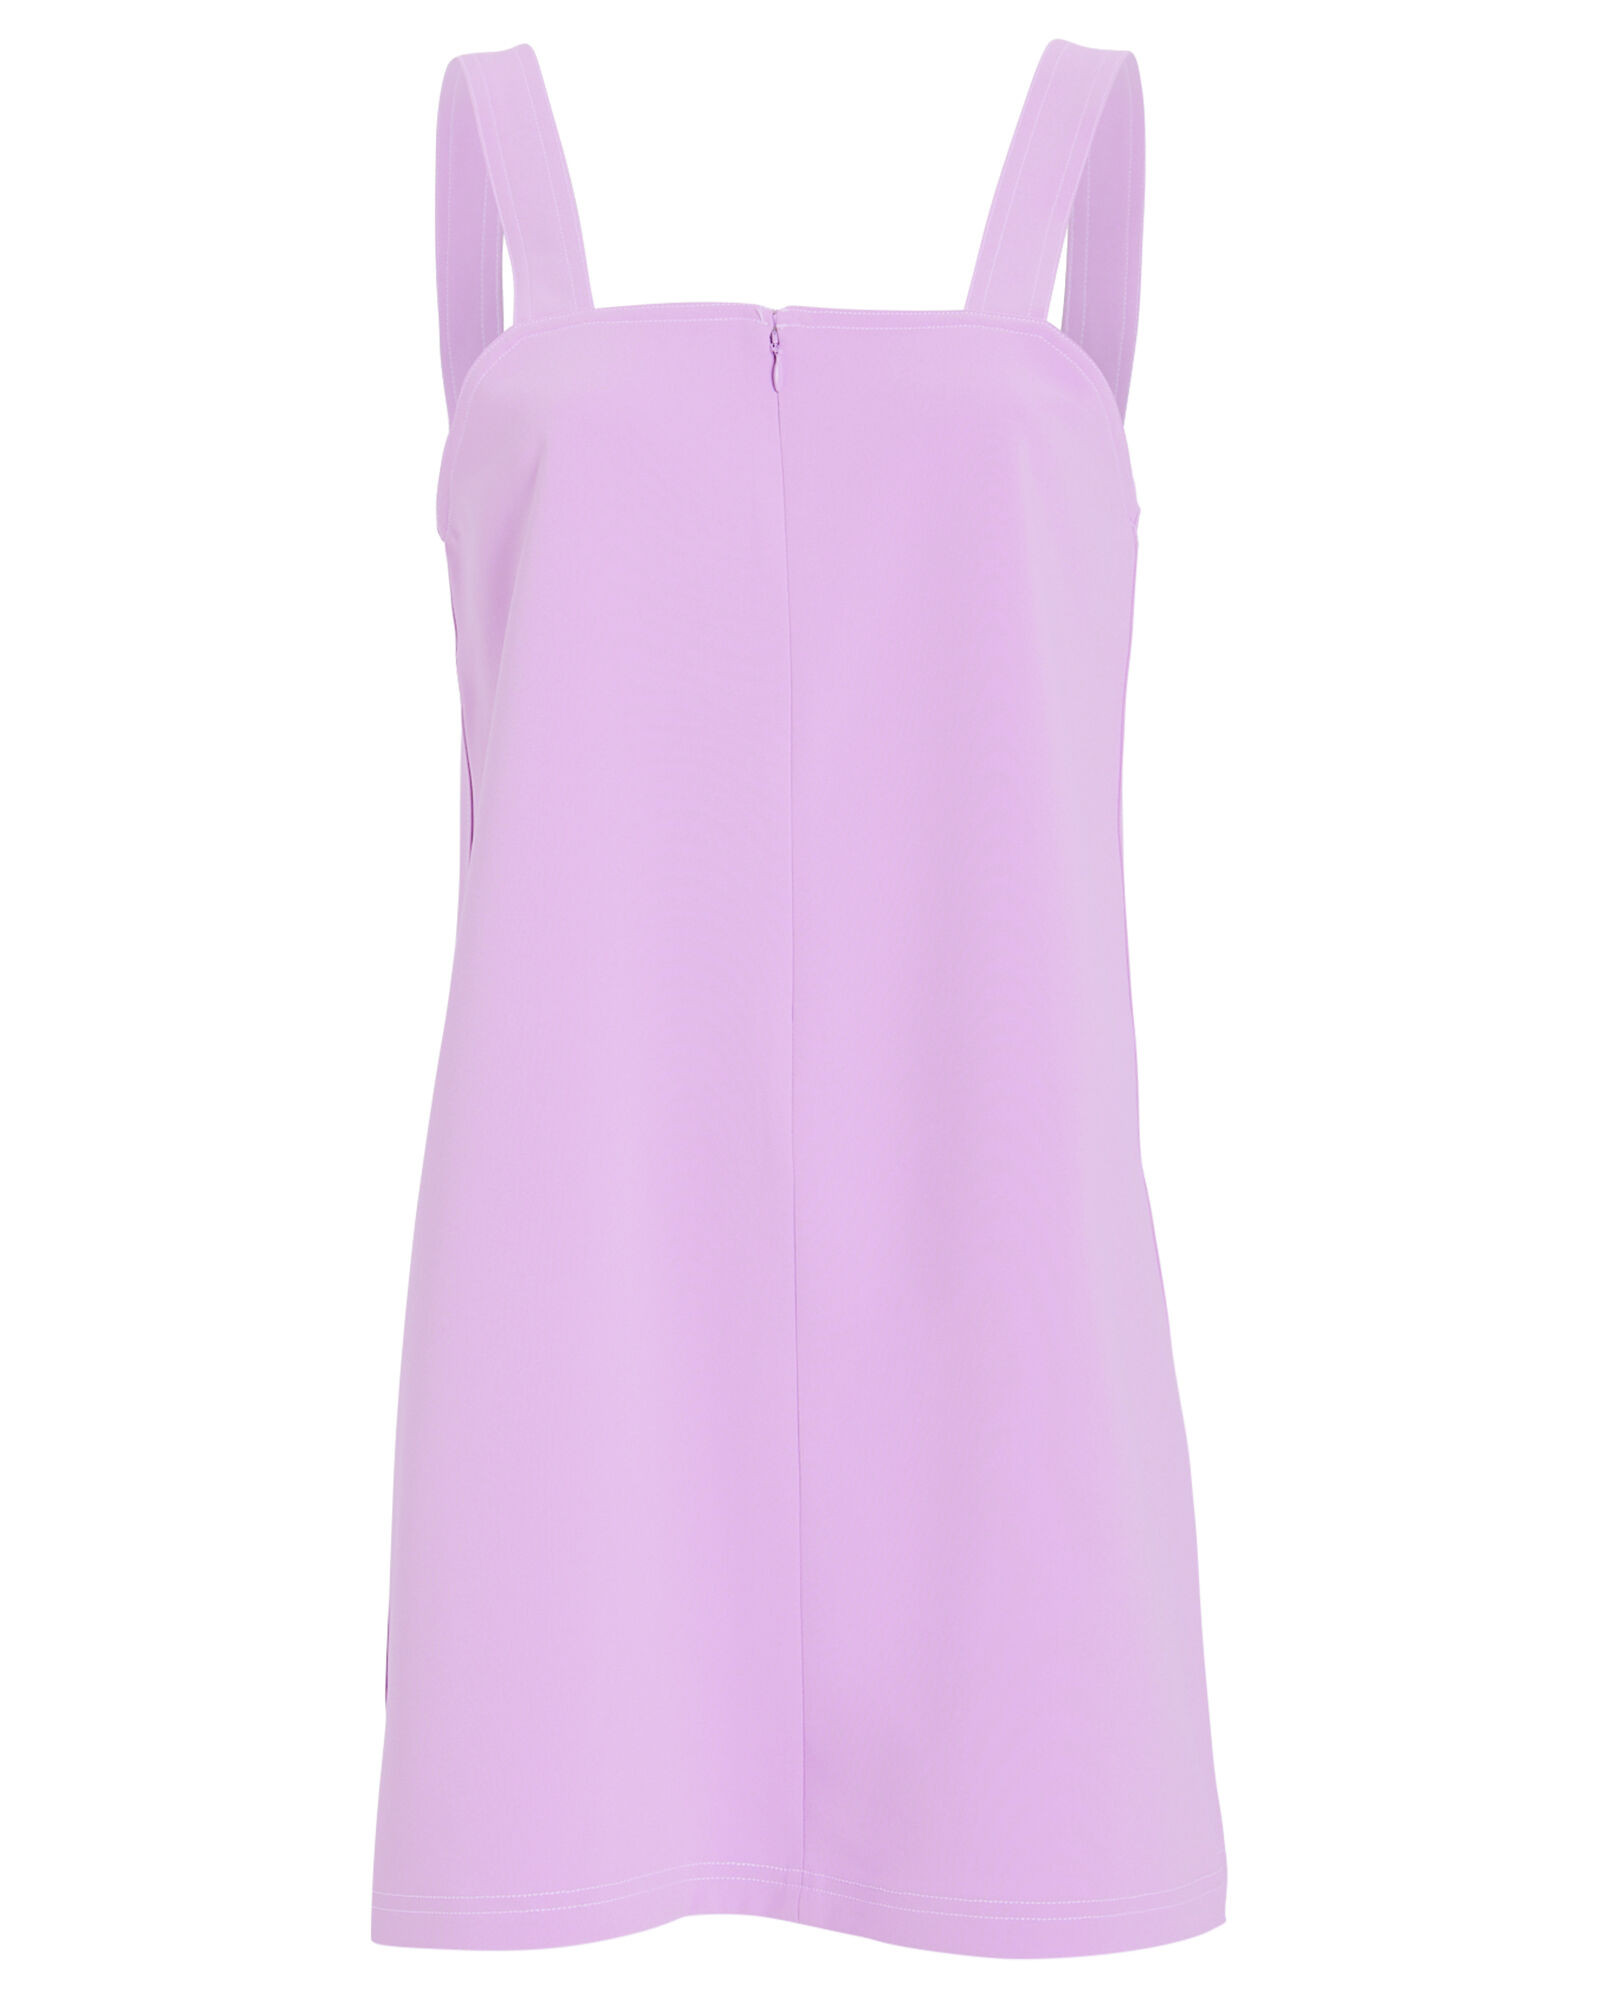 Noreen Mini Dress, LILAC, hi-res